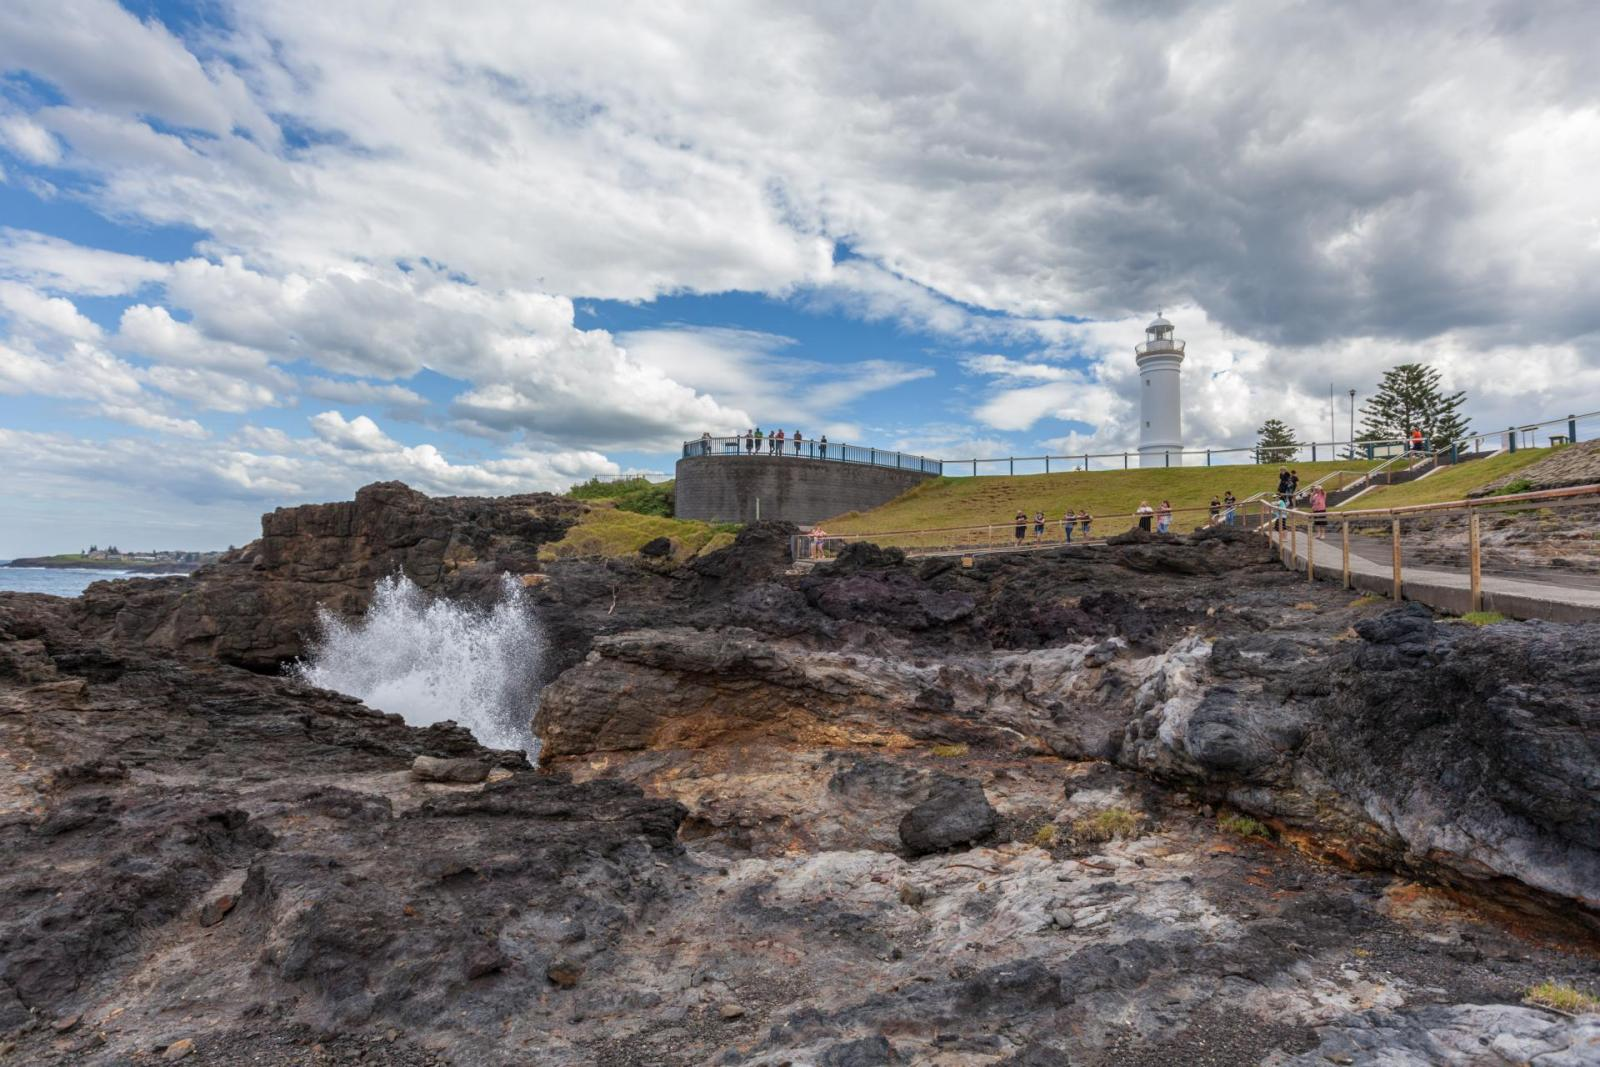 Reiseroute Sydney Melbourne: Kiama Lighthouse blowhole NSW